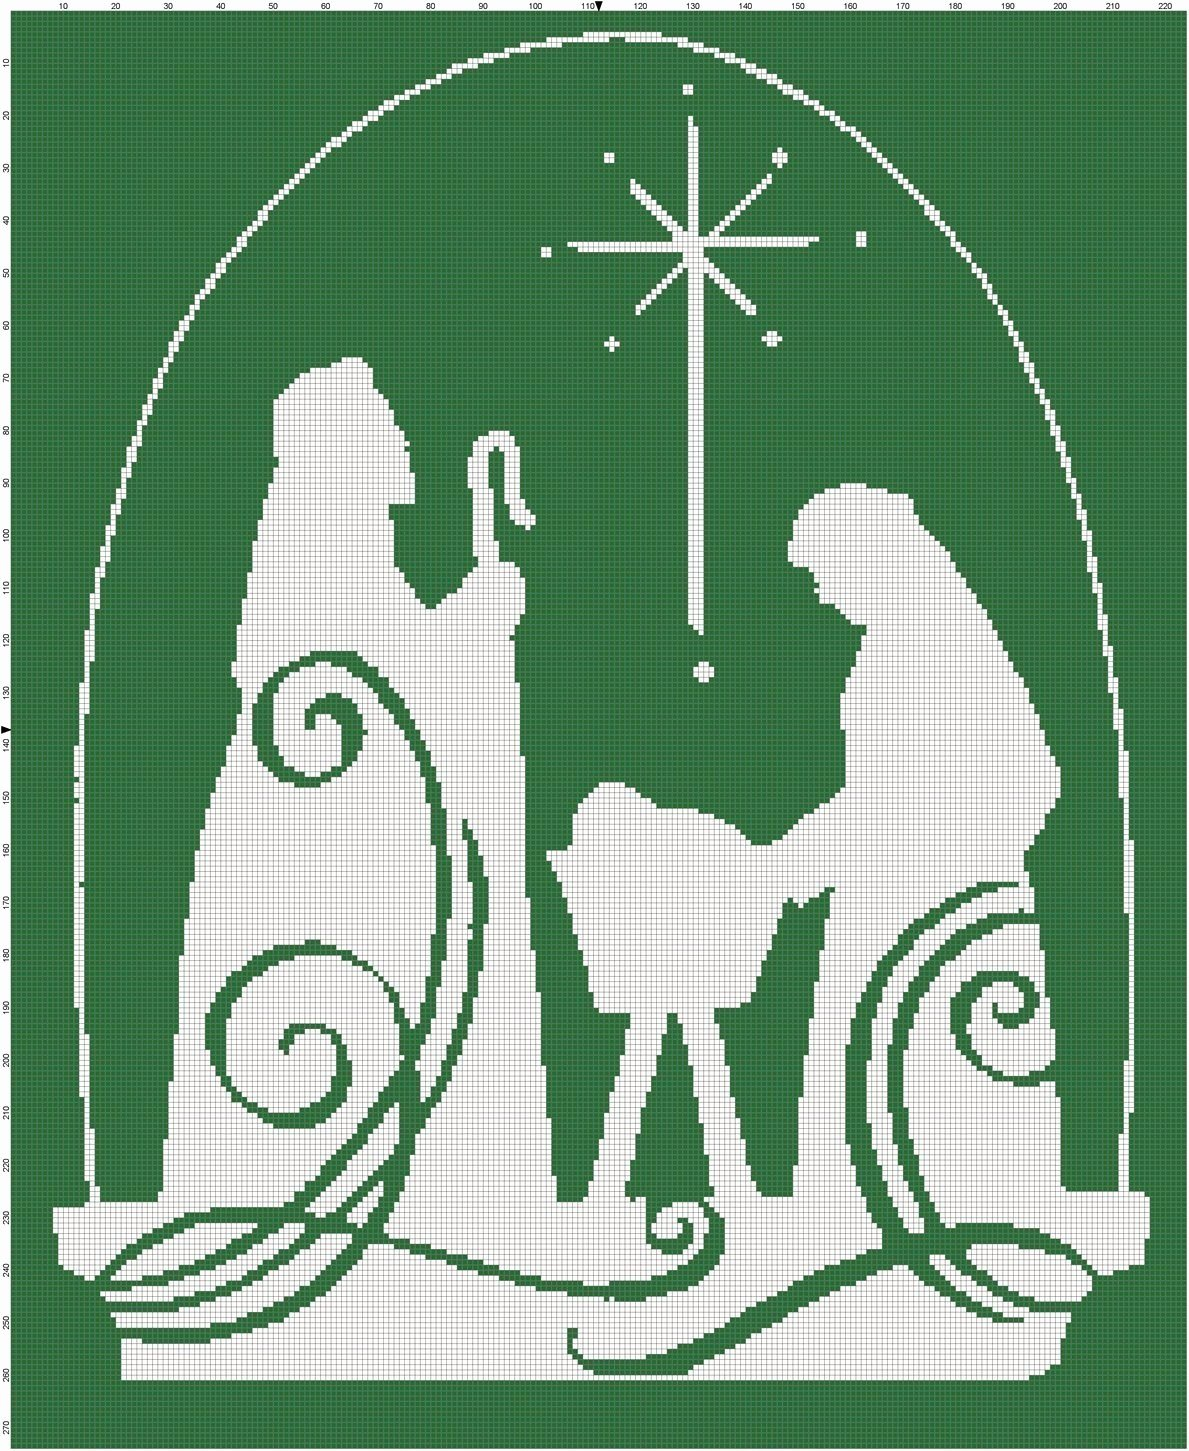 Nativity Scene Silhouette Pattern Free Lovely Christmas Jesus Nativity Scene Cross Stitch Pattern